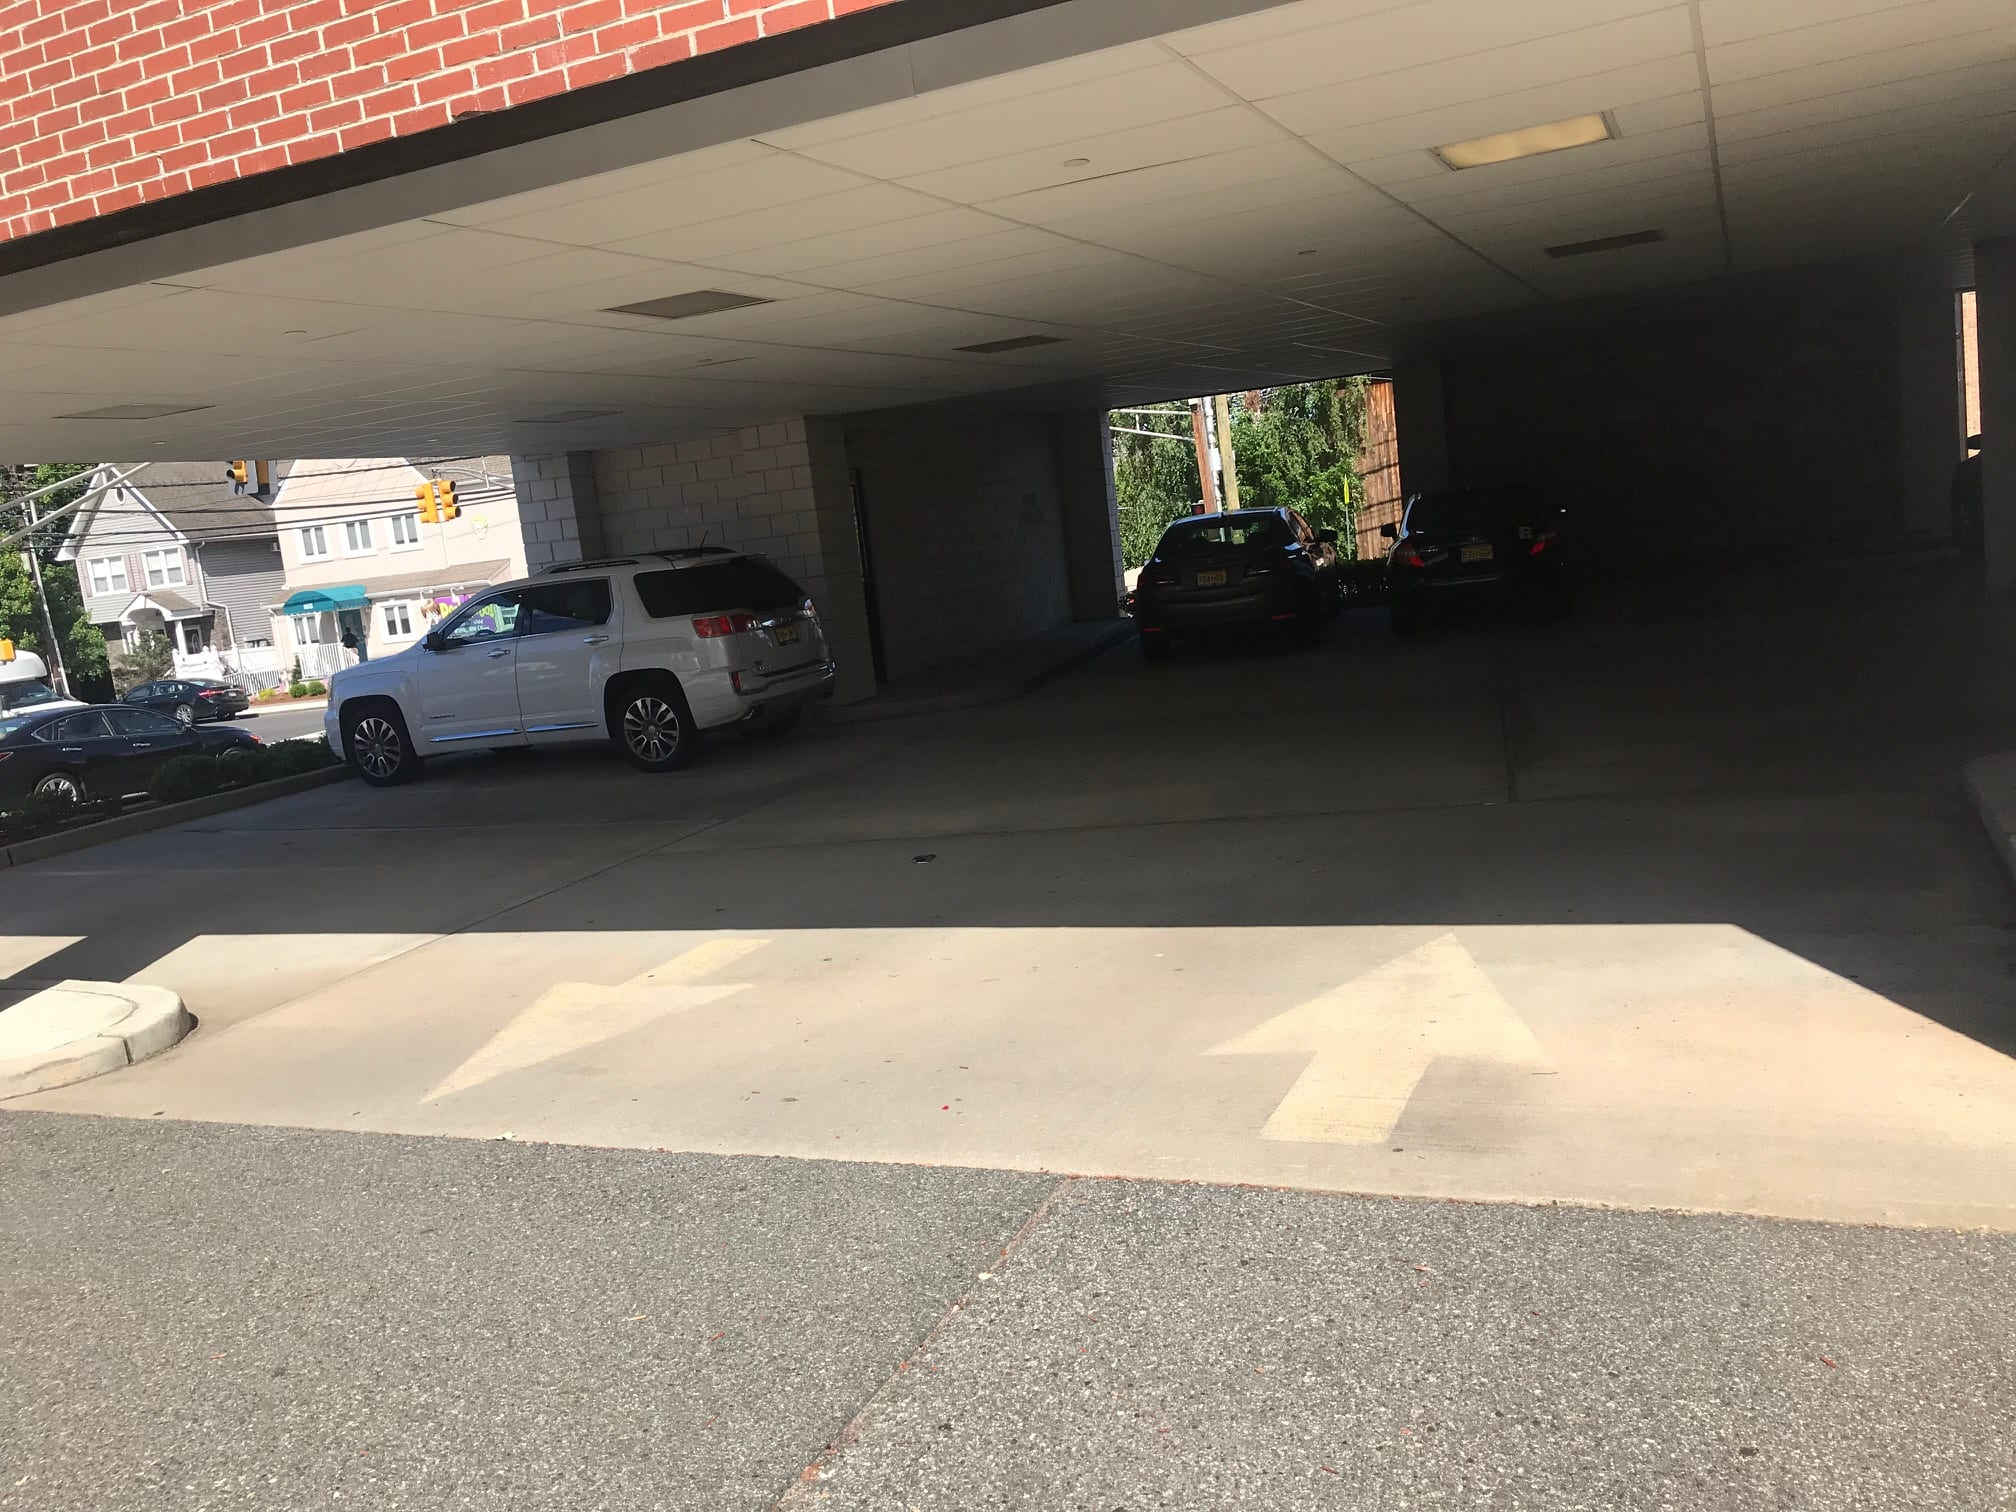 Here is a photo of the entrance to the parking garage where patients park at our physical therapy clinic in Lyndhurst, New Jersey.